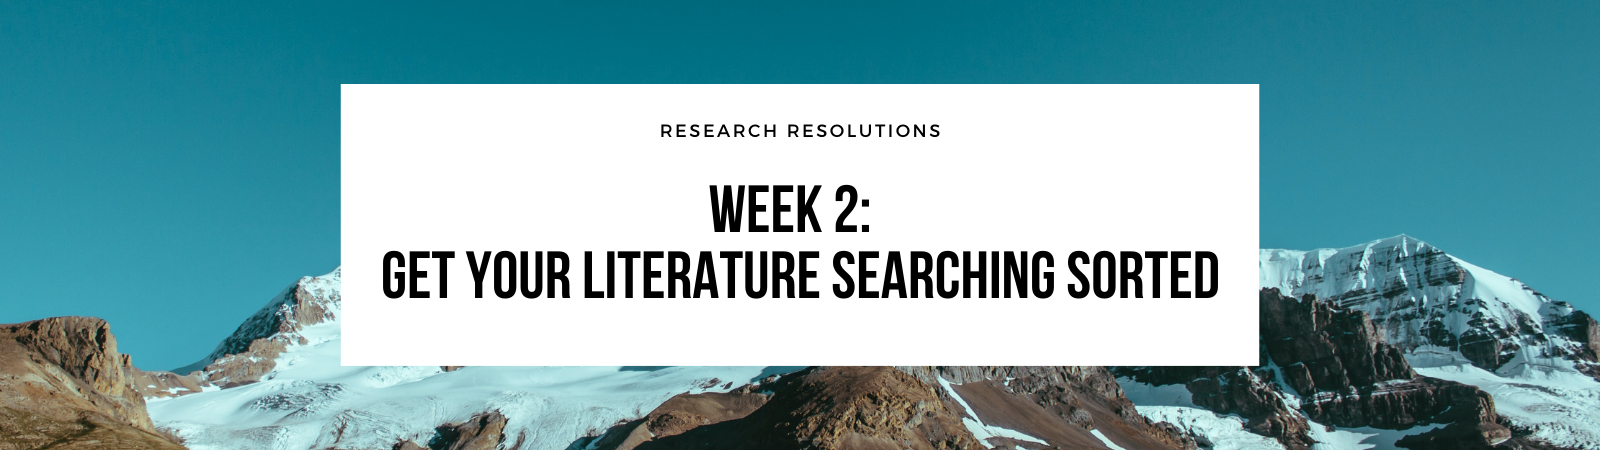 Week 2: Get your literature searching sorted